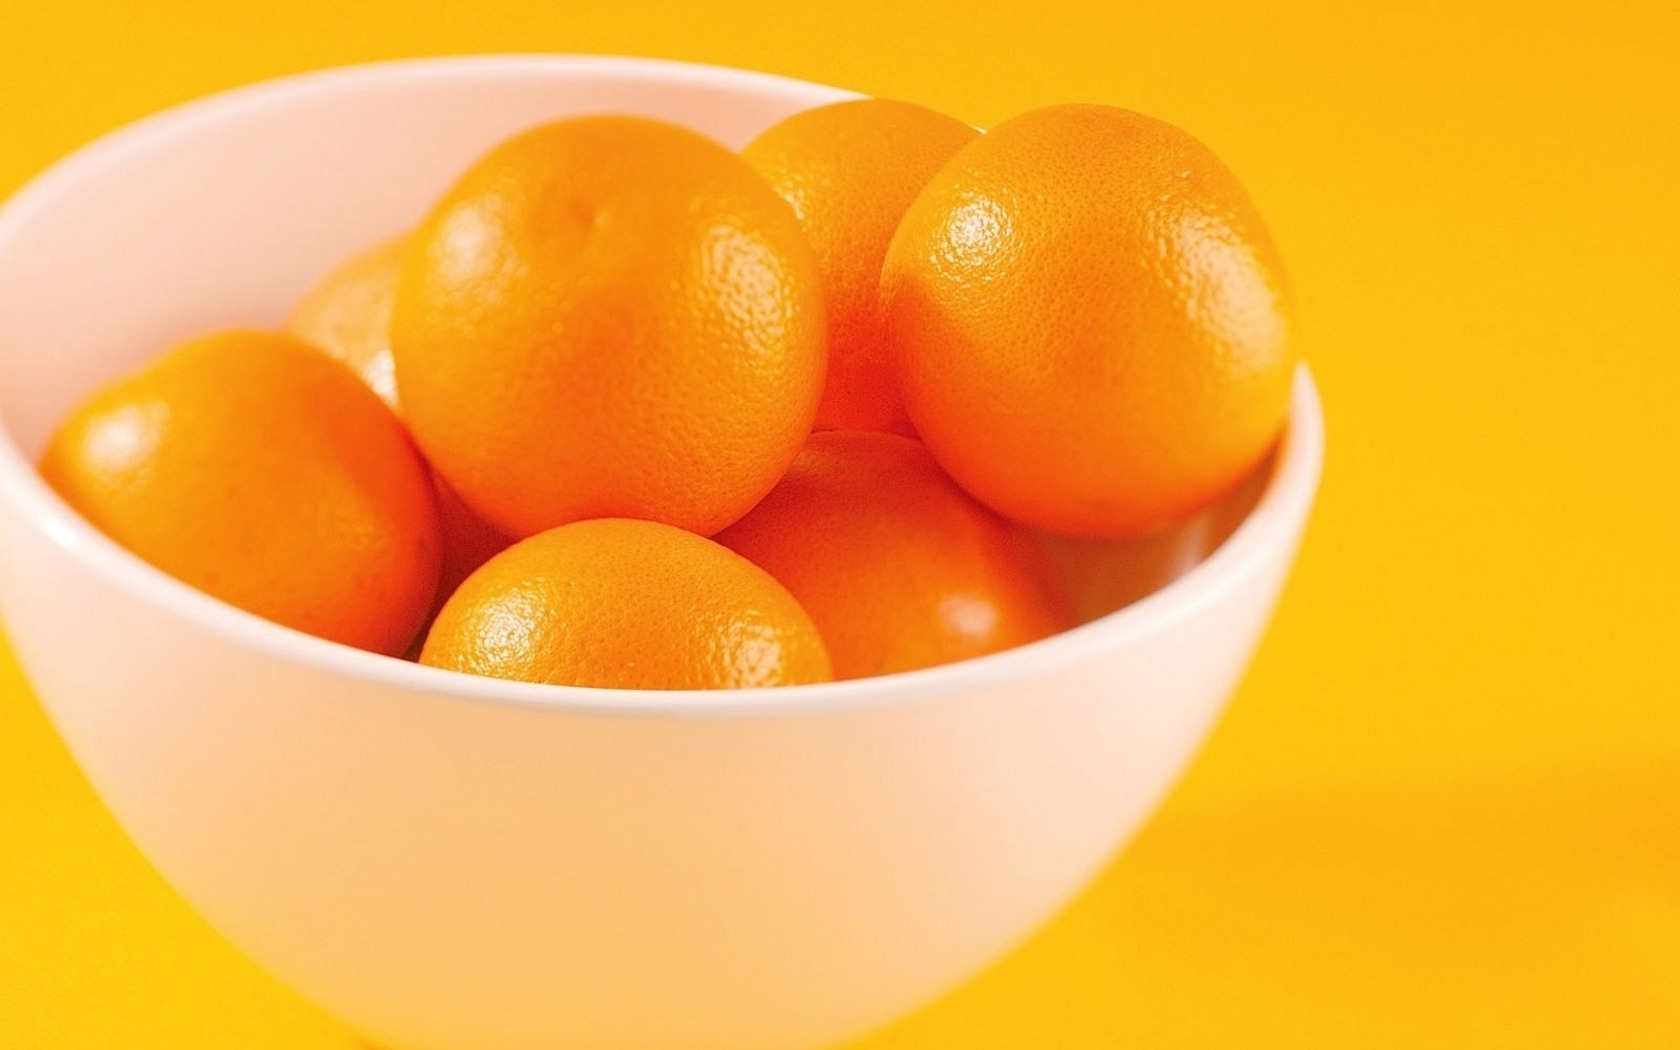 42847 download wallpaper Food, Oranges, Objects screensavers and pictures for free